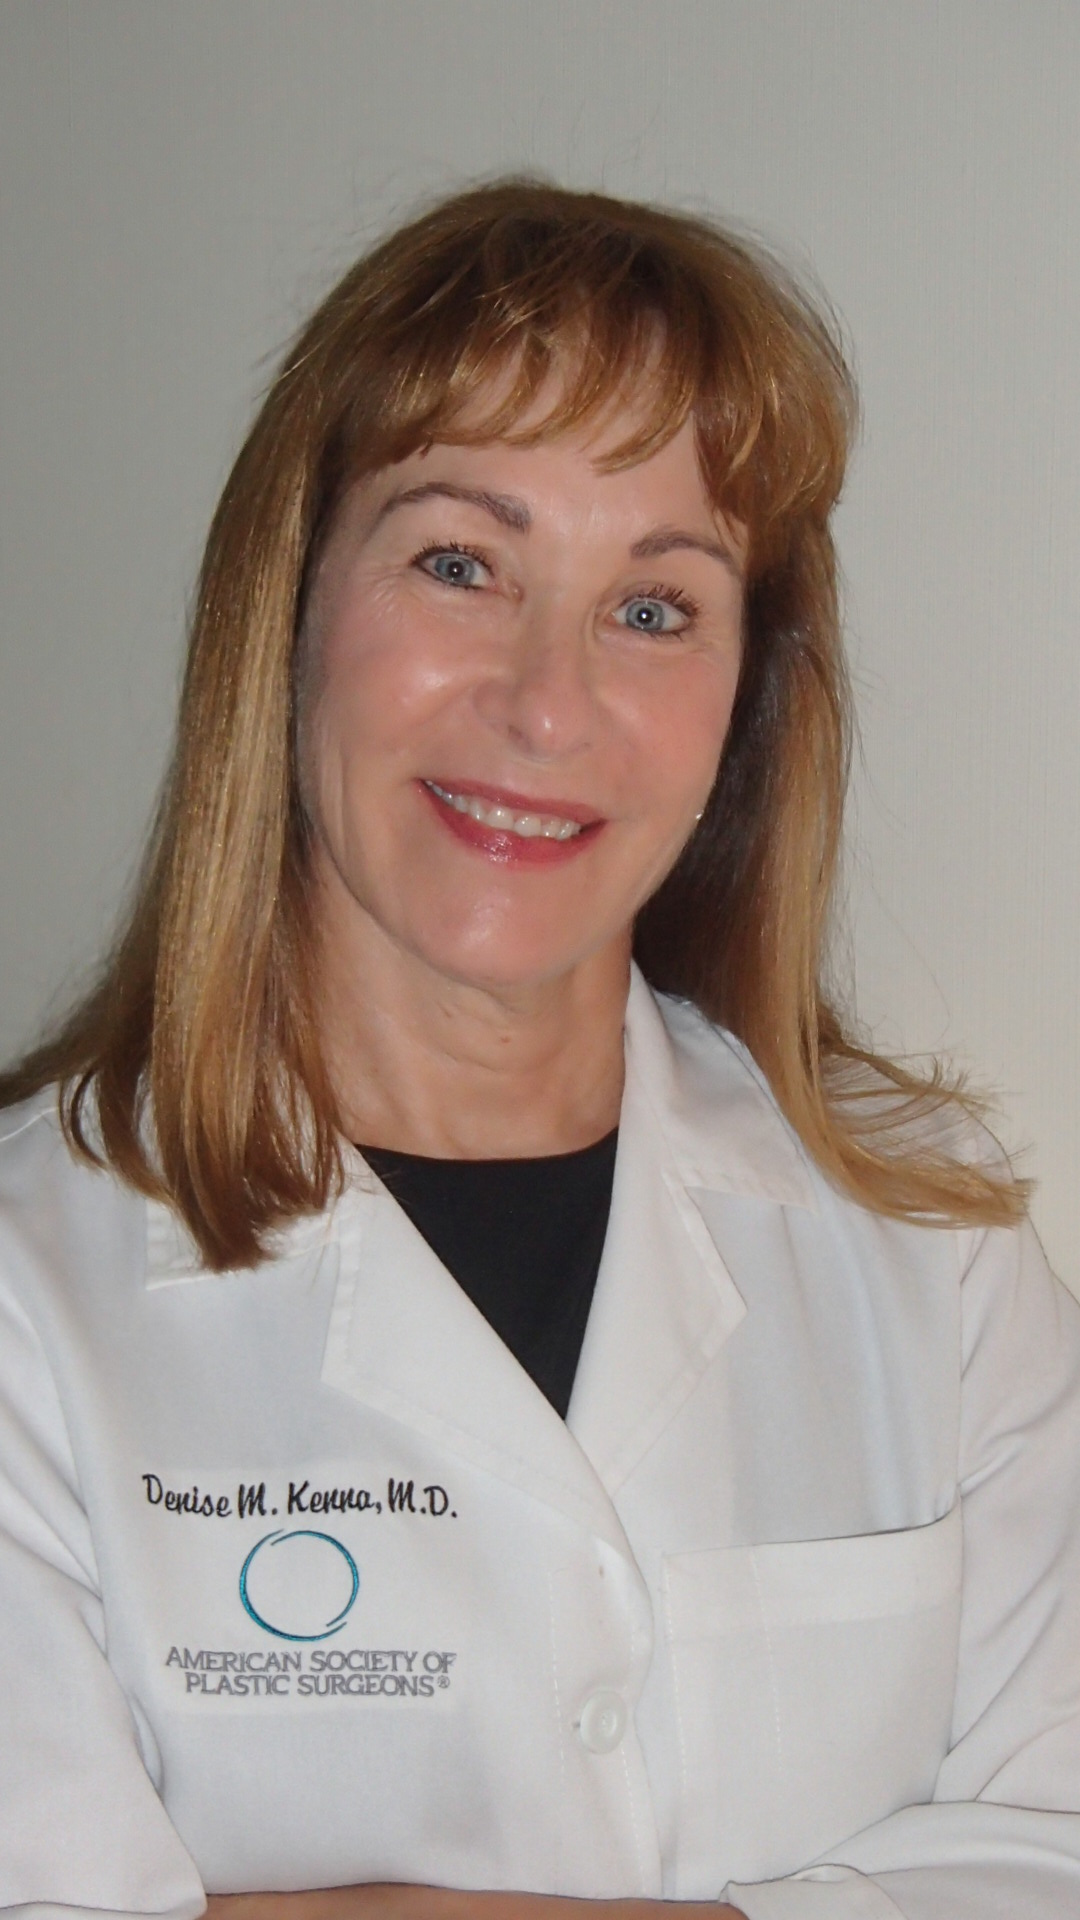 Dr Denise M Kenna